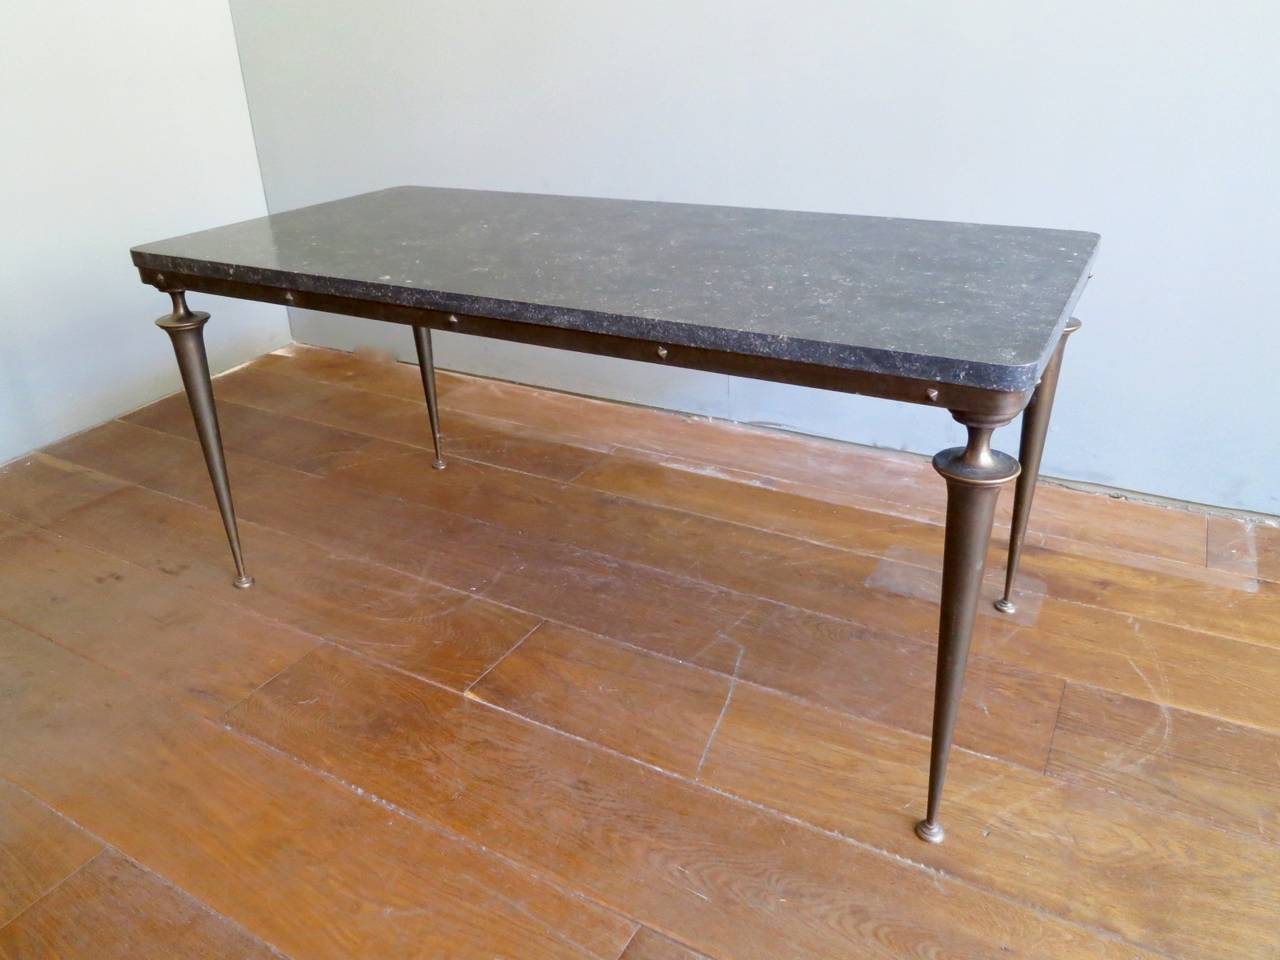 Italian S Bronze And Marble Cocktail Table For Sale At Stdibs - Studded coffee table